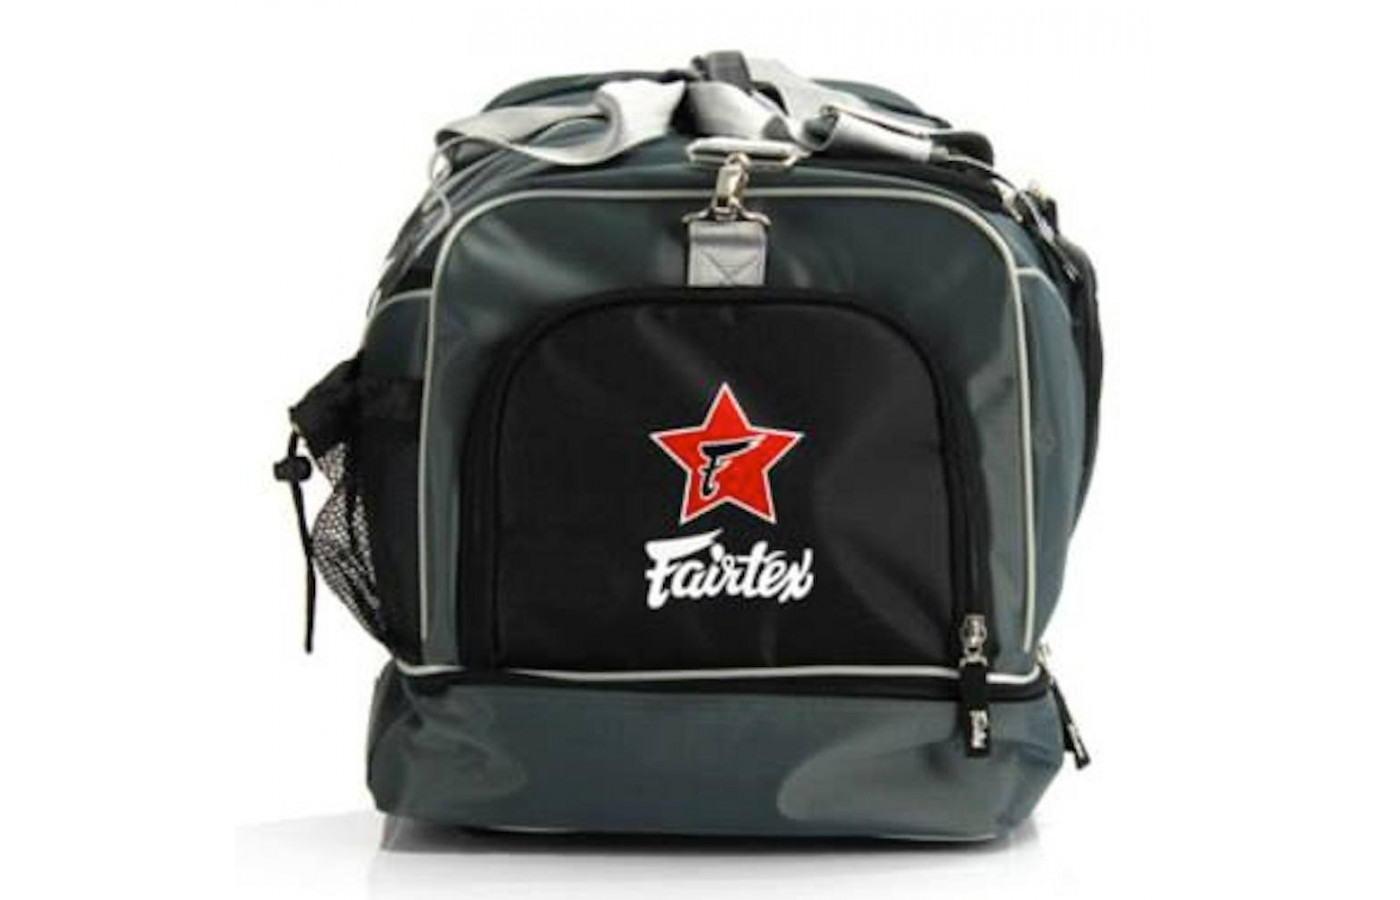 fairtex equipment bag side